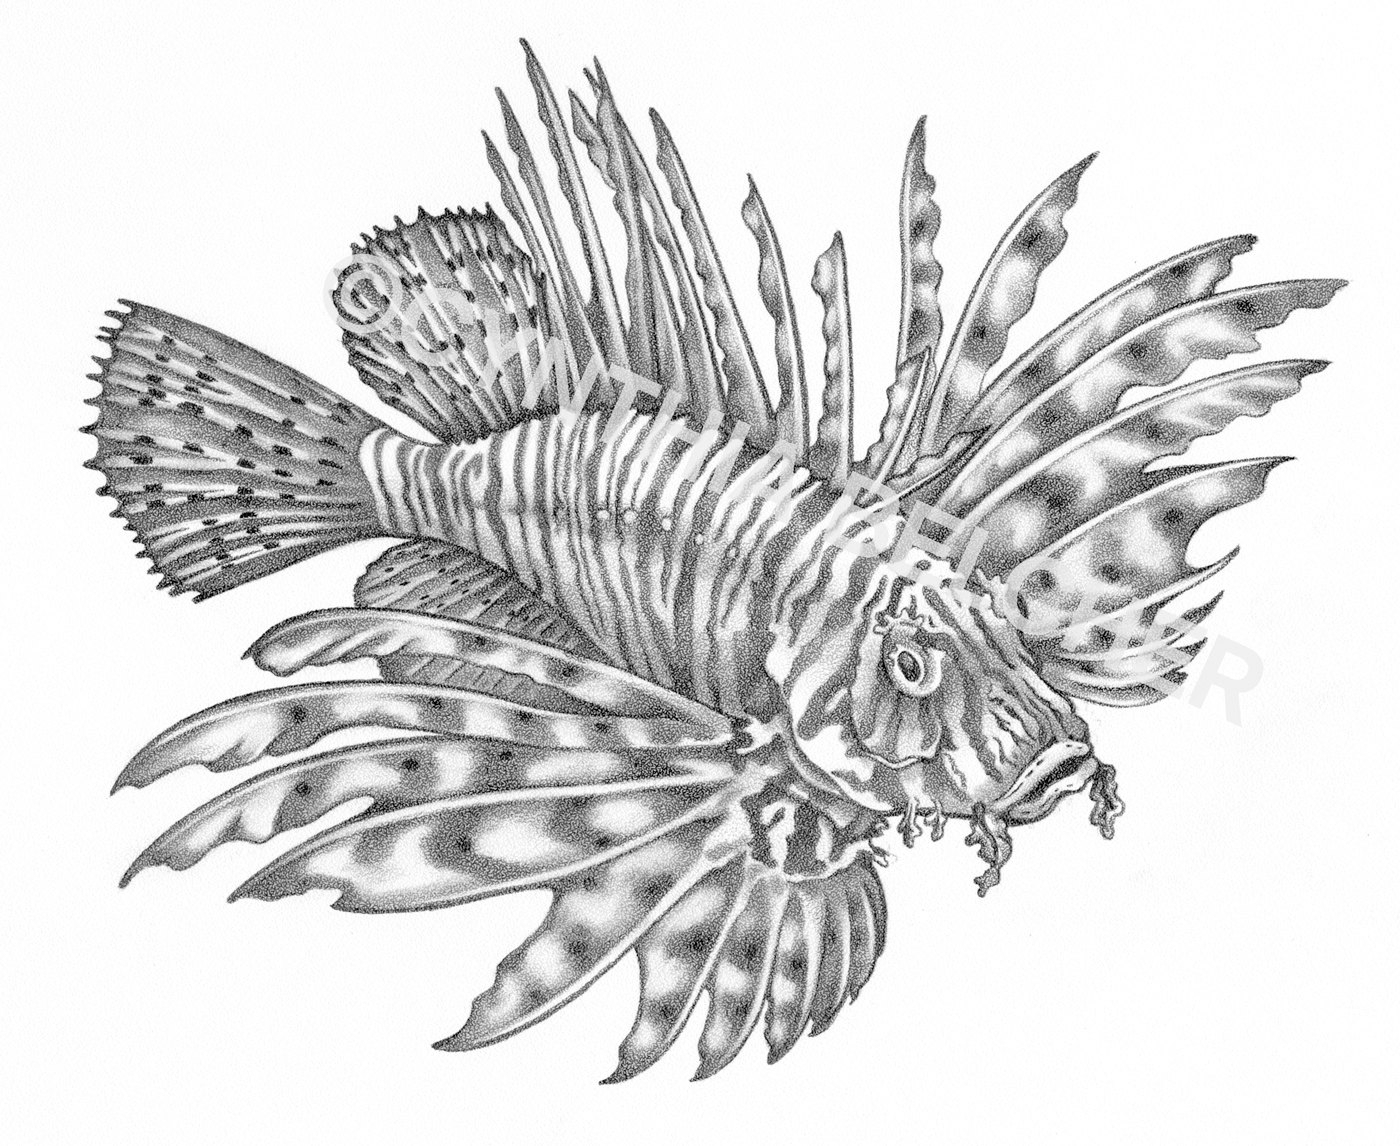 Pencil Sketches Of Fish Fish Pencil